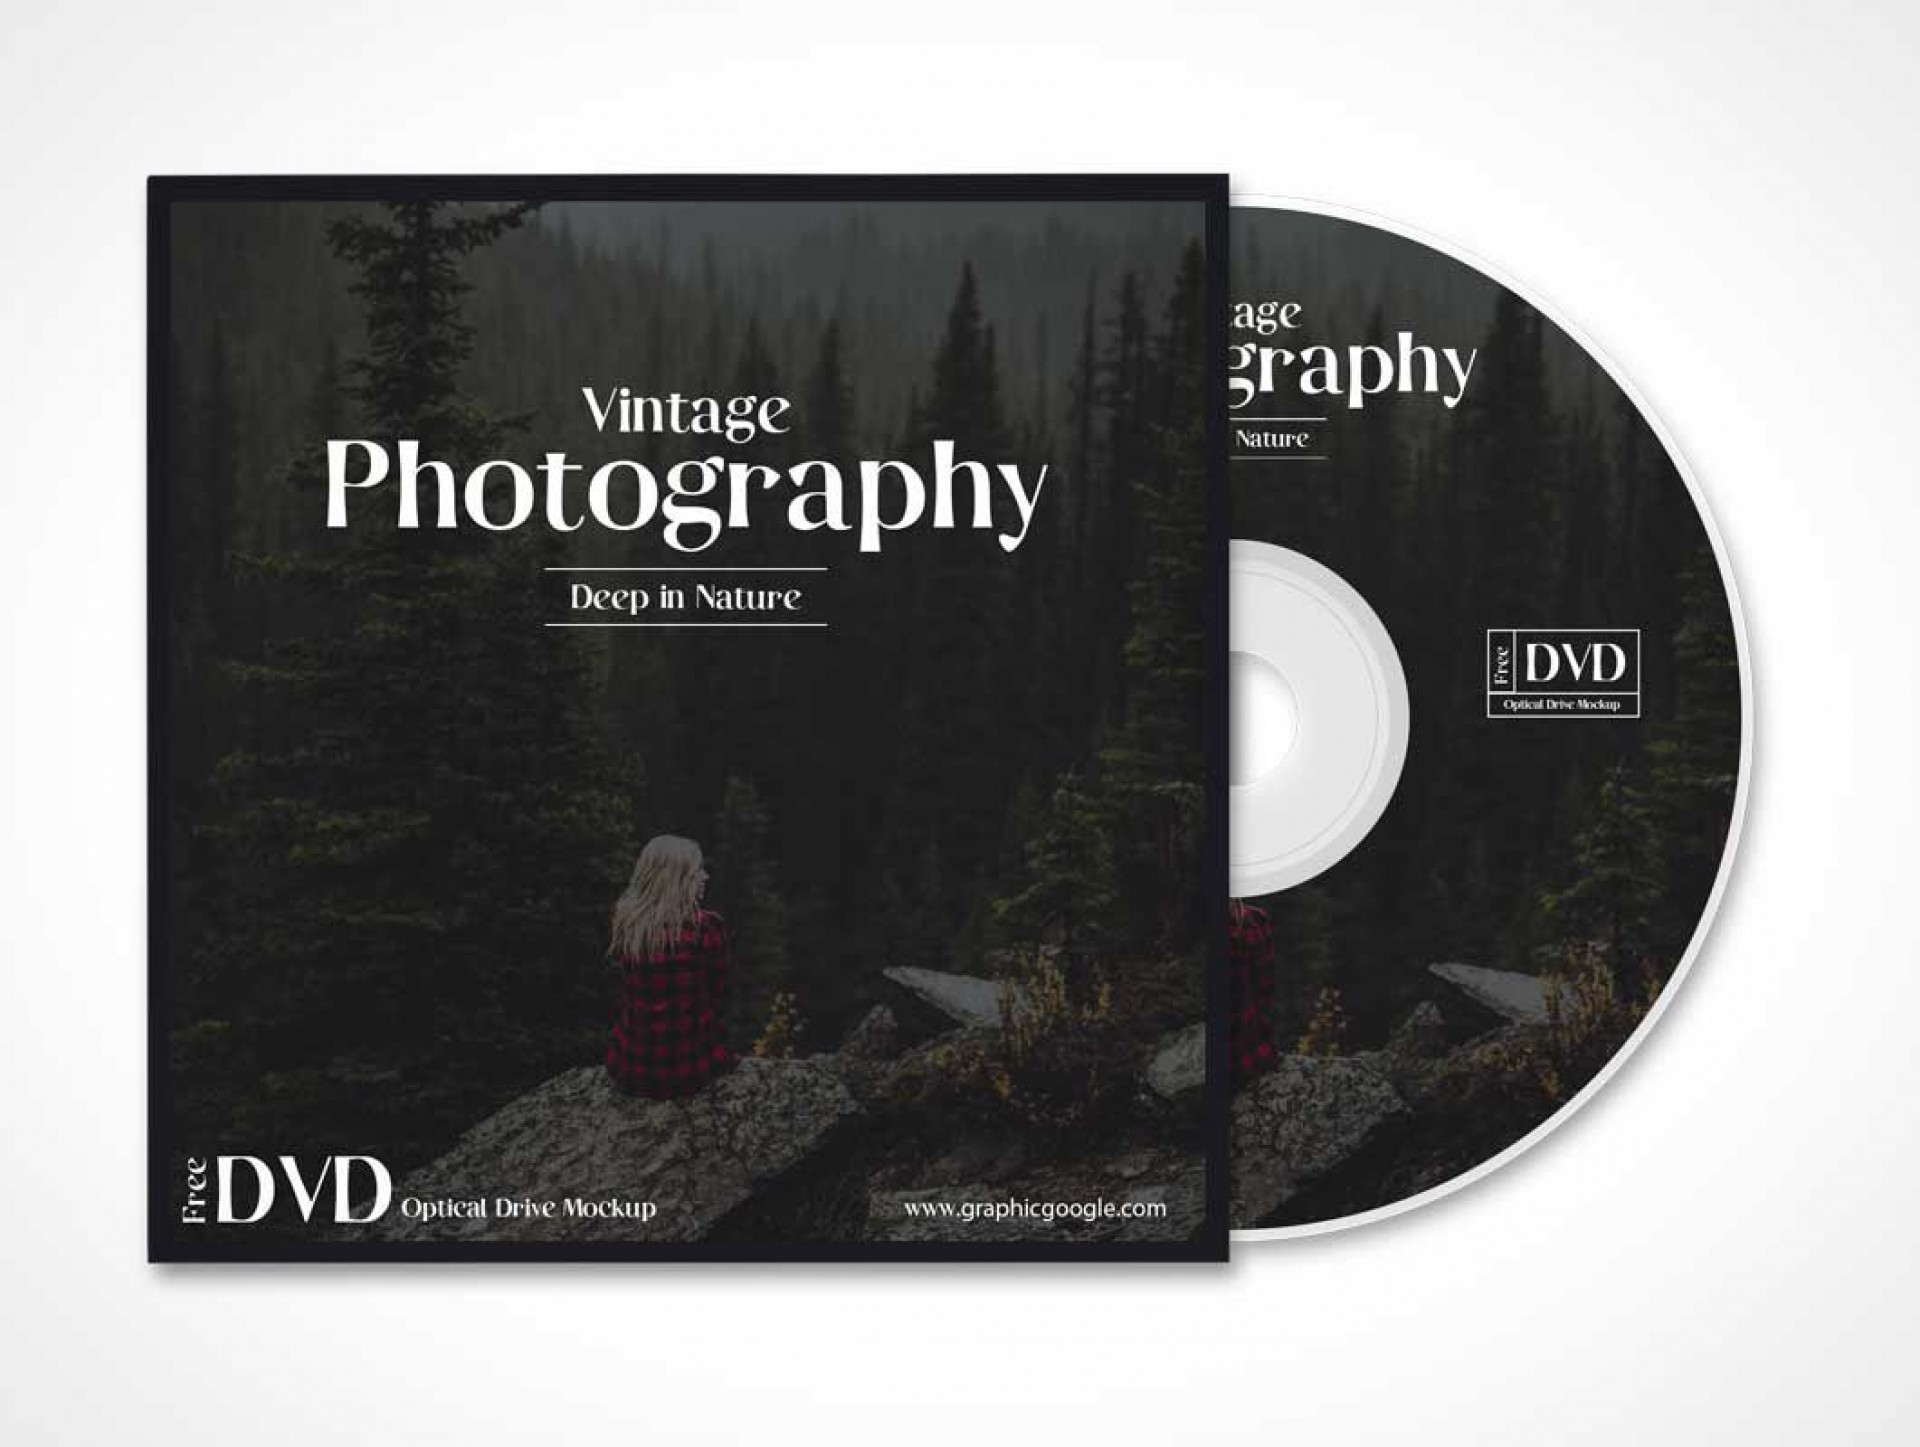 008 Unusual Free Cd Cover Design Template Photoshop Concept  Label Psd Download1920